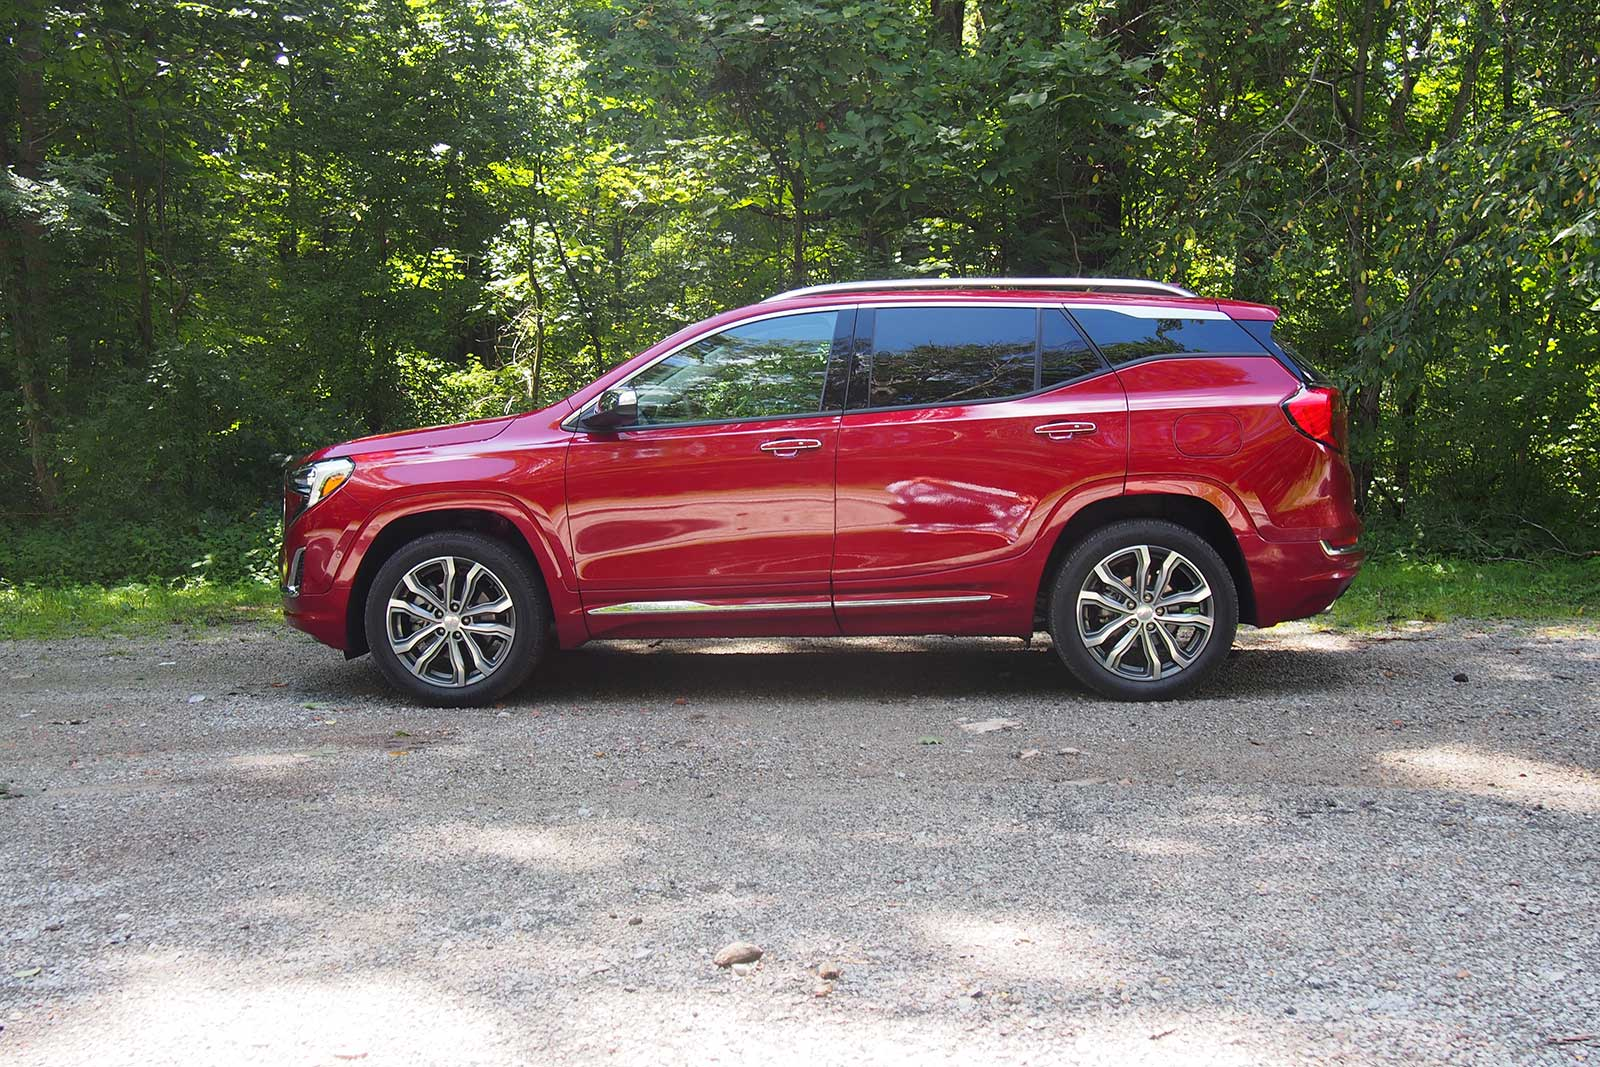 terrain fl new garber for ft in denali fwd buick sale suv inventory gmc at pierce